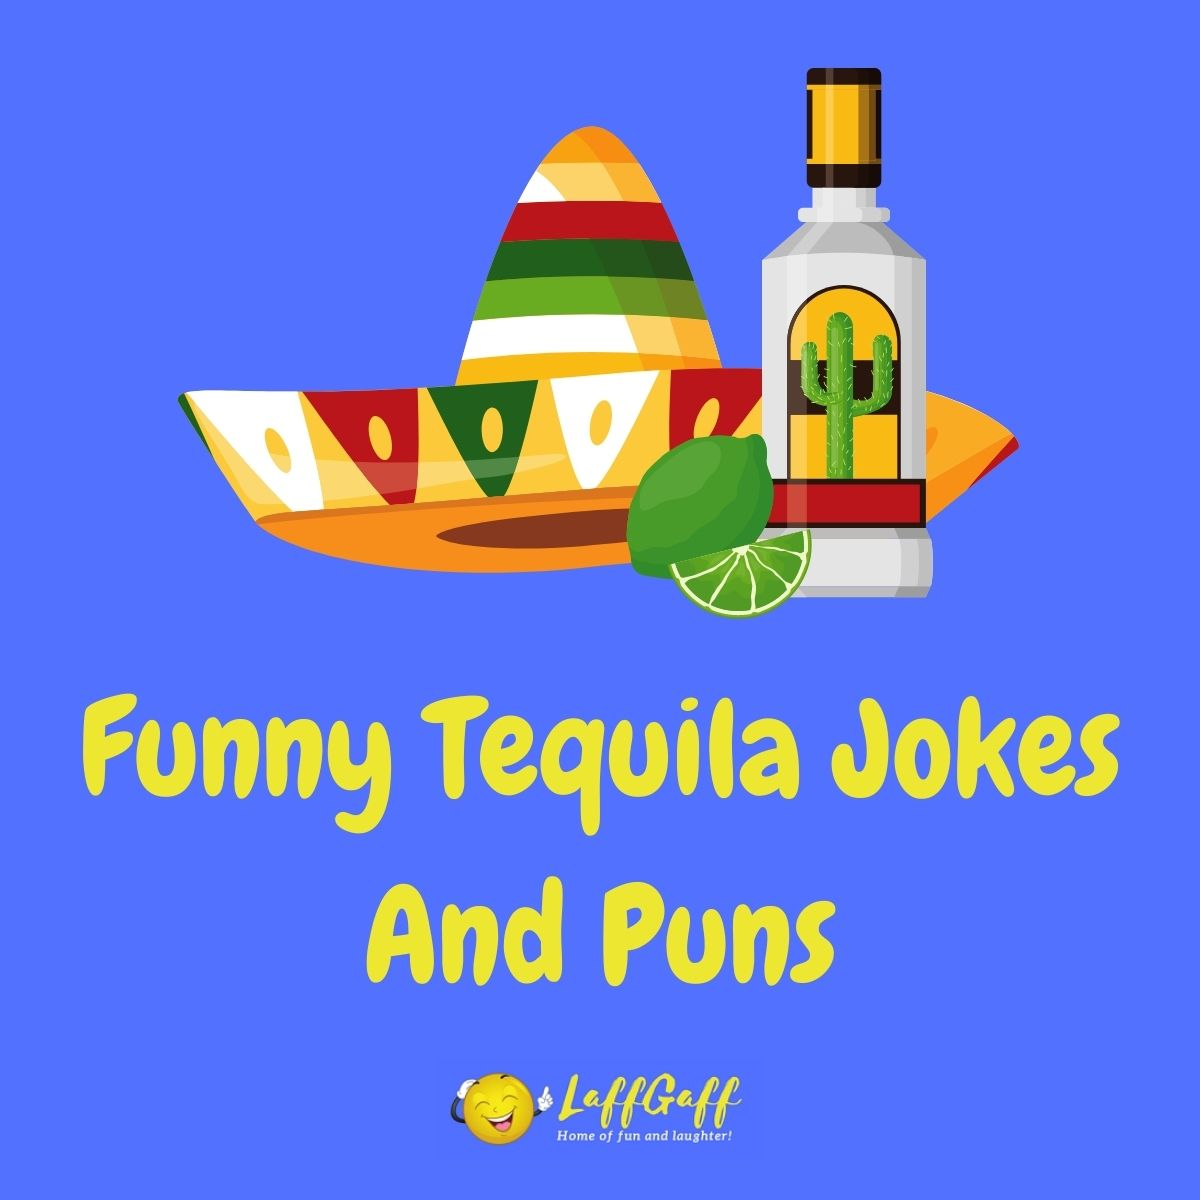 Featured image for a page of funny tequila jokes and puns.